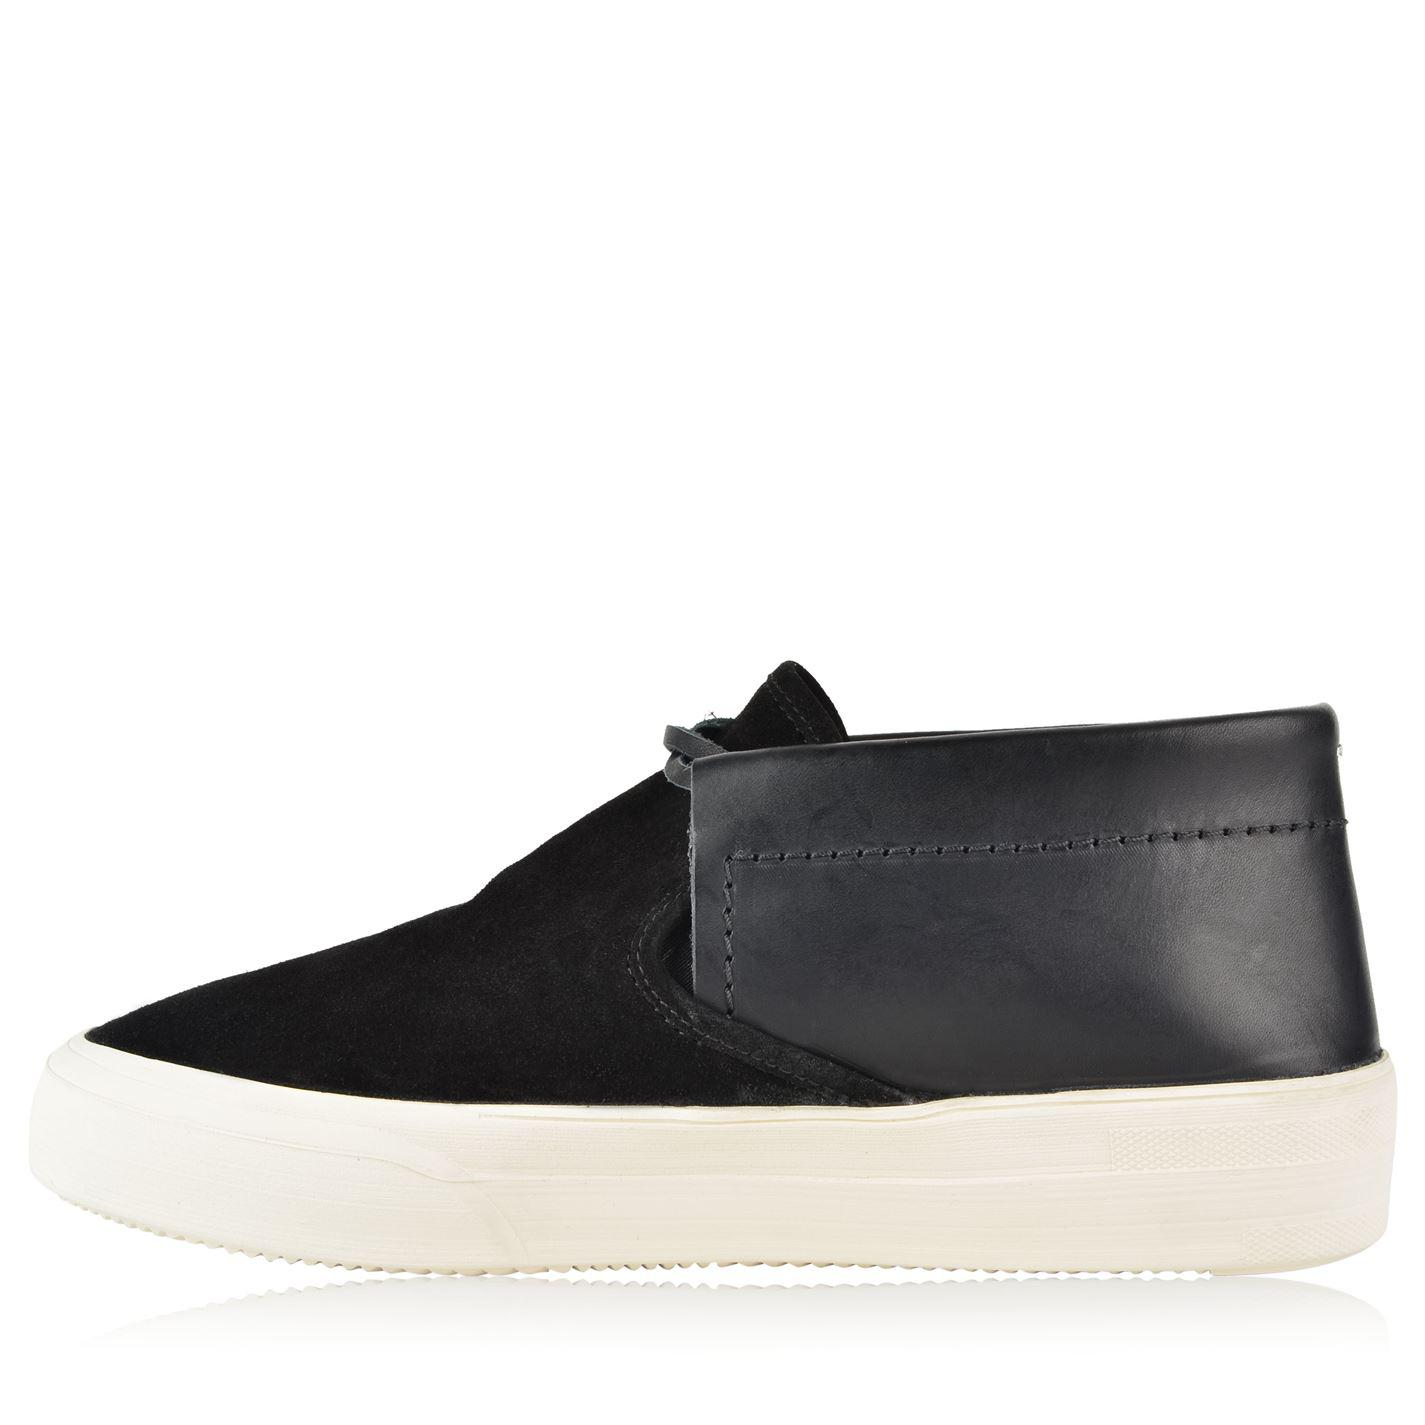 Maison Margiela Leather Contrast Mid Top Trainers in Black